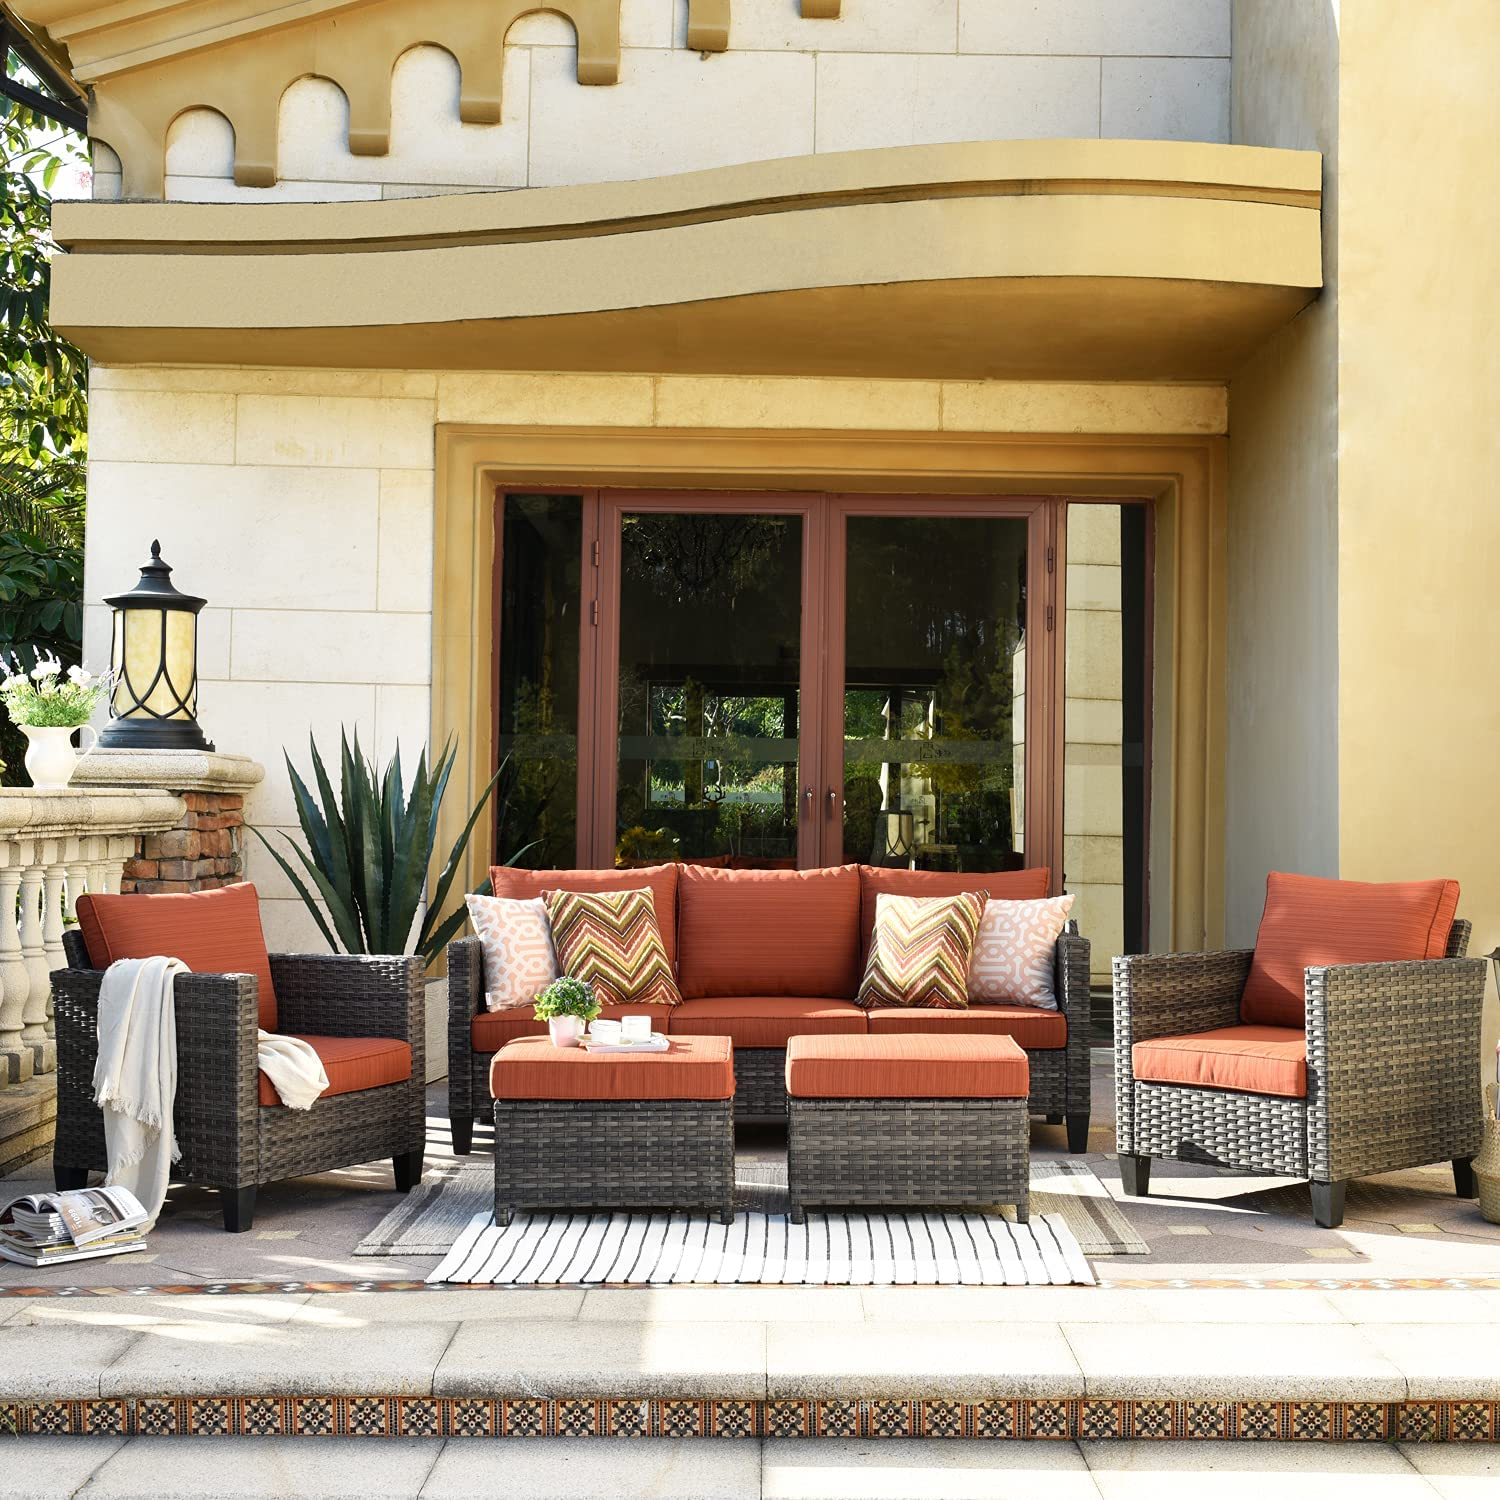 XIZZI Patio Furniture, Outdoor Garden Sofa sectional, Wicker Patio Furniture with Wather Resistant Cushion and 2 Pillows (Red)